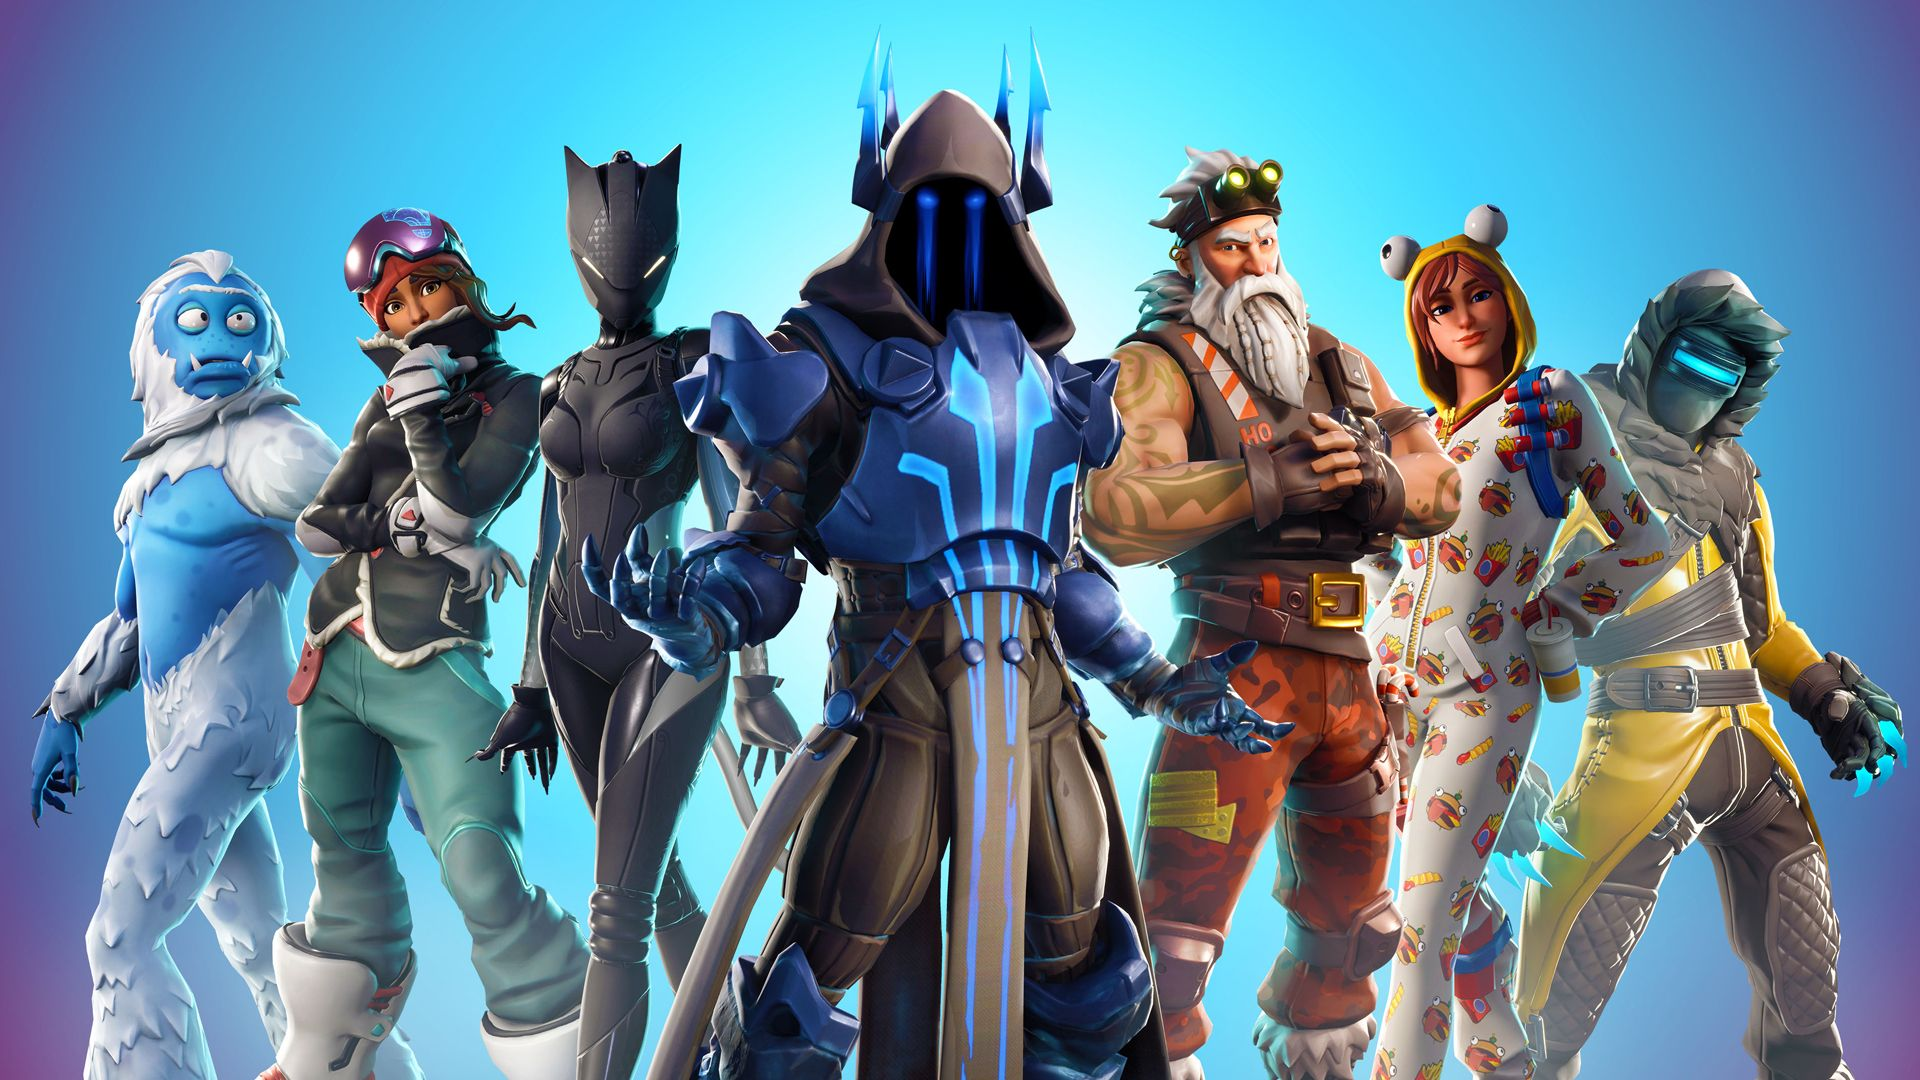 fortnite account merge guide how to transfer v bucks between ps4 xbox switch - fortnite account search